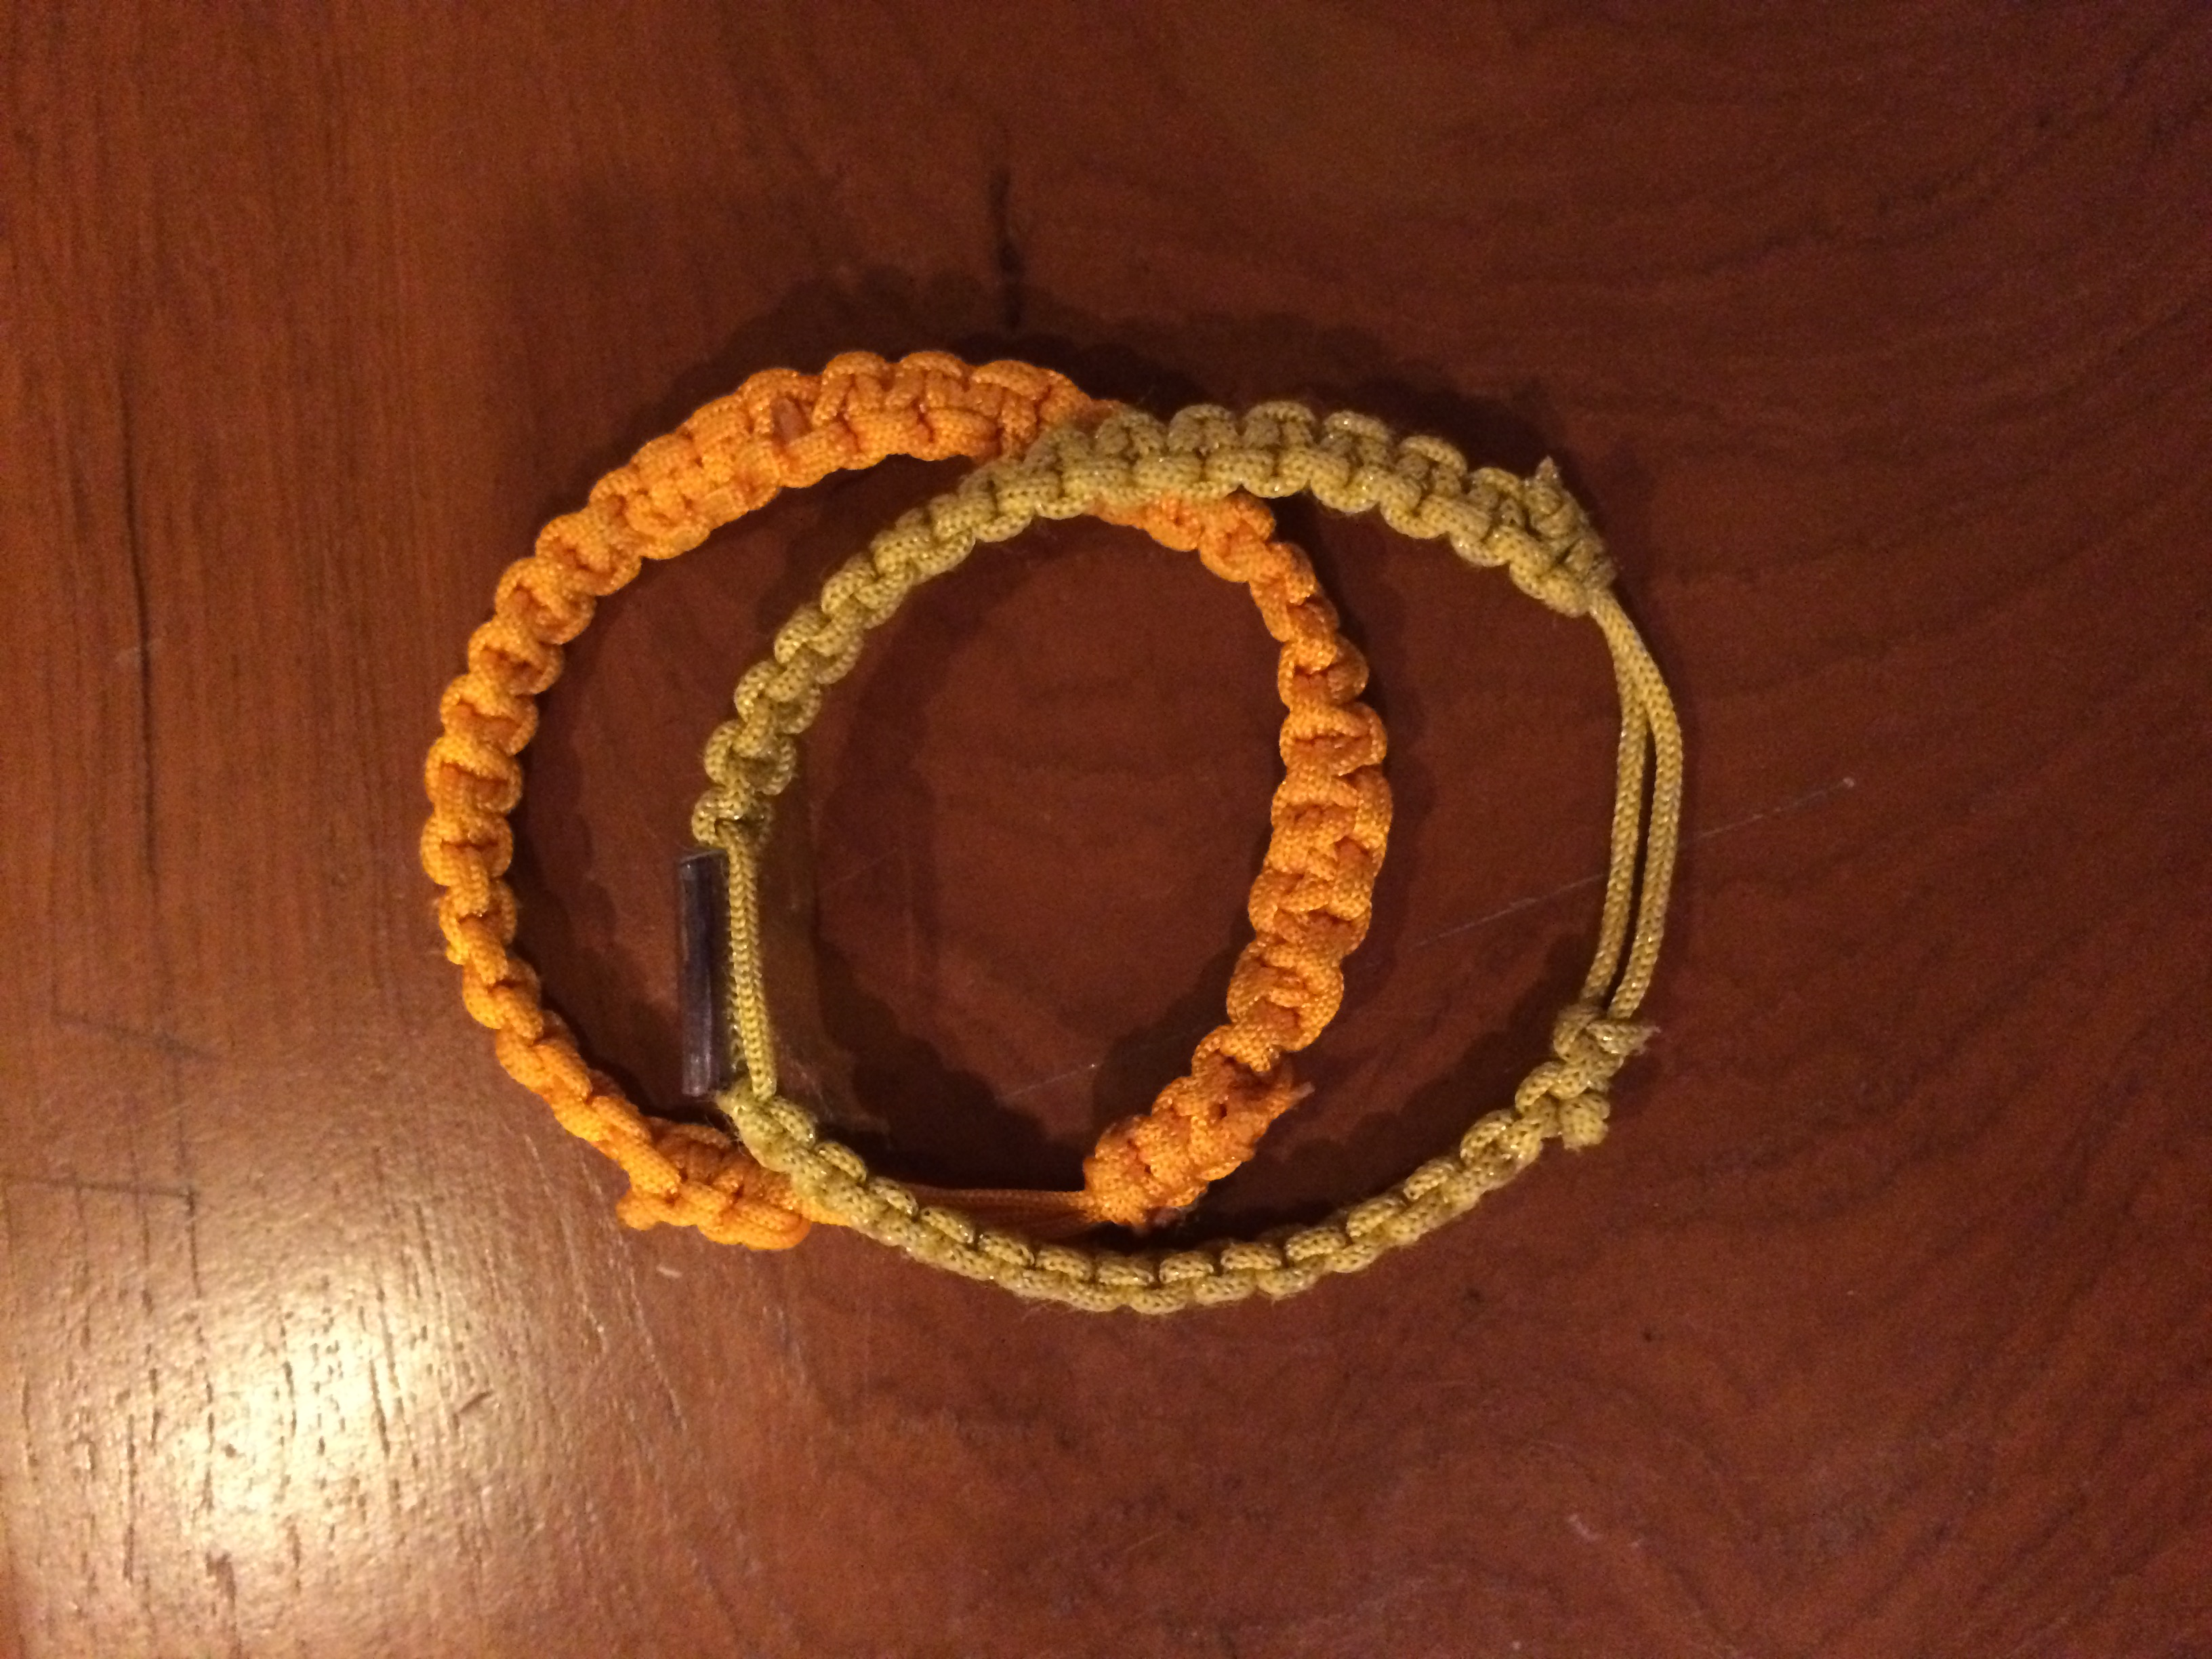 My bracelets from aunt